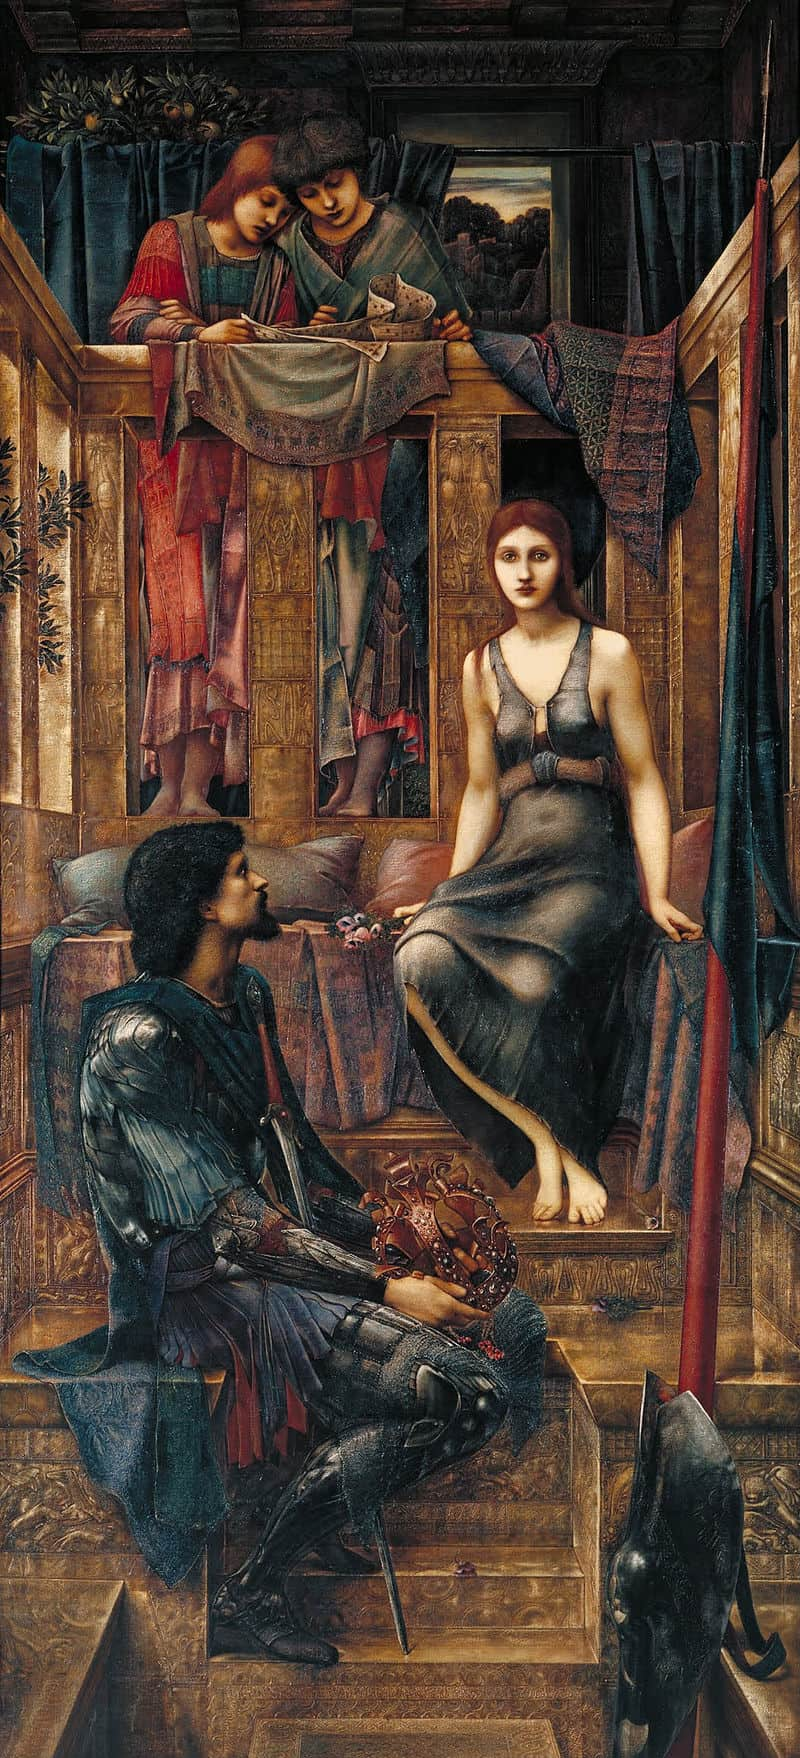 Edward_Burne-Jones_-_King_Cophetua_and_the_Beggar_Maid_-_Google_Art_Project